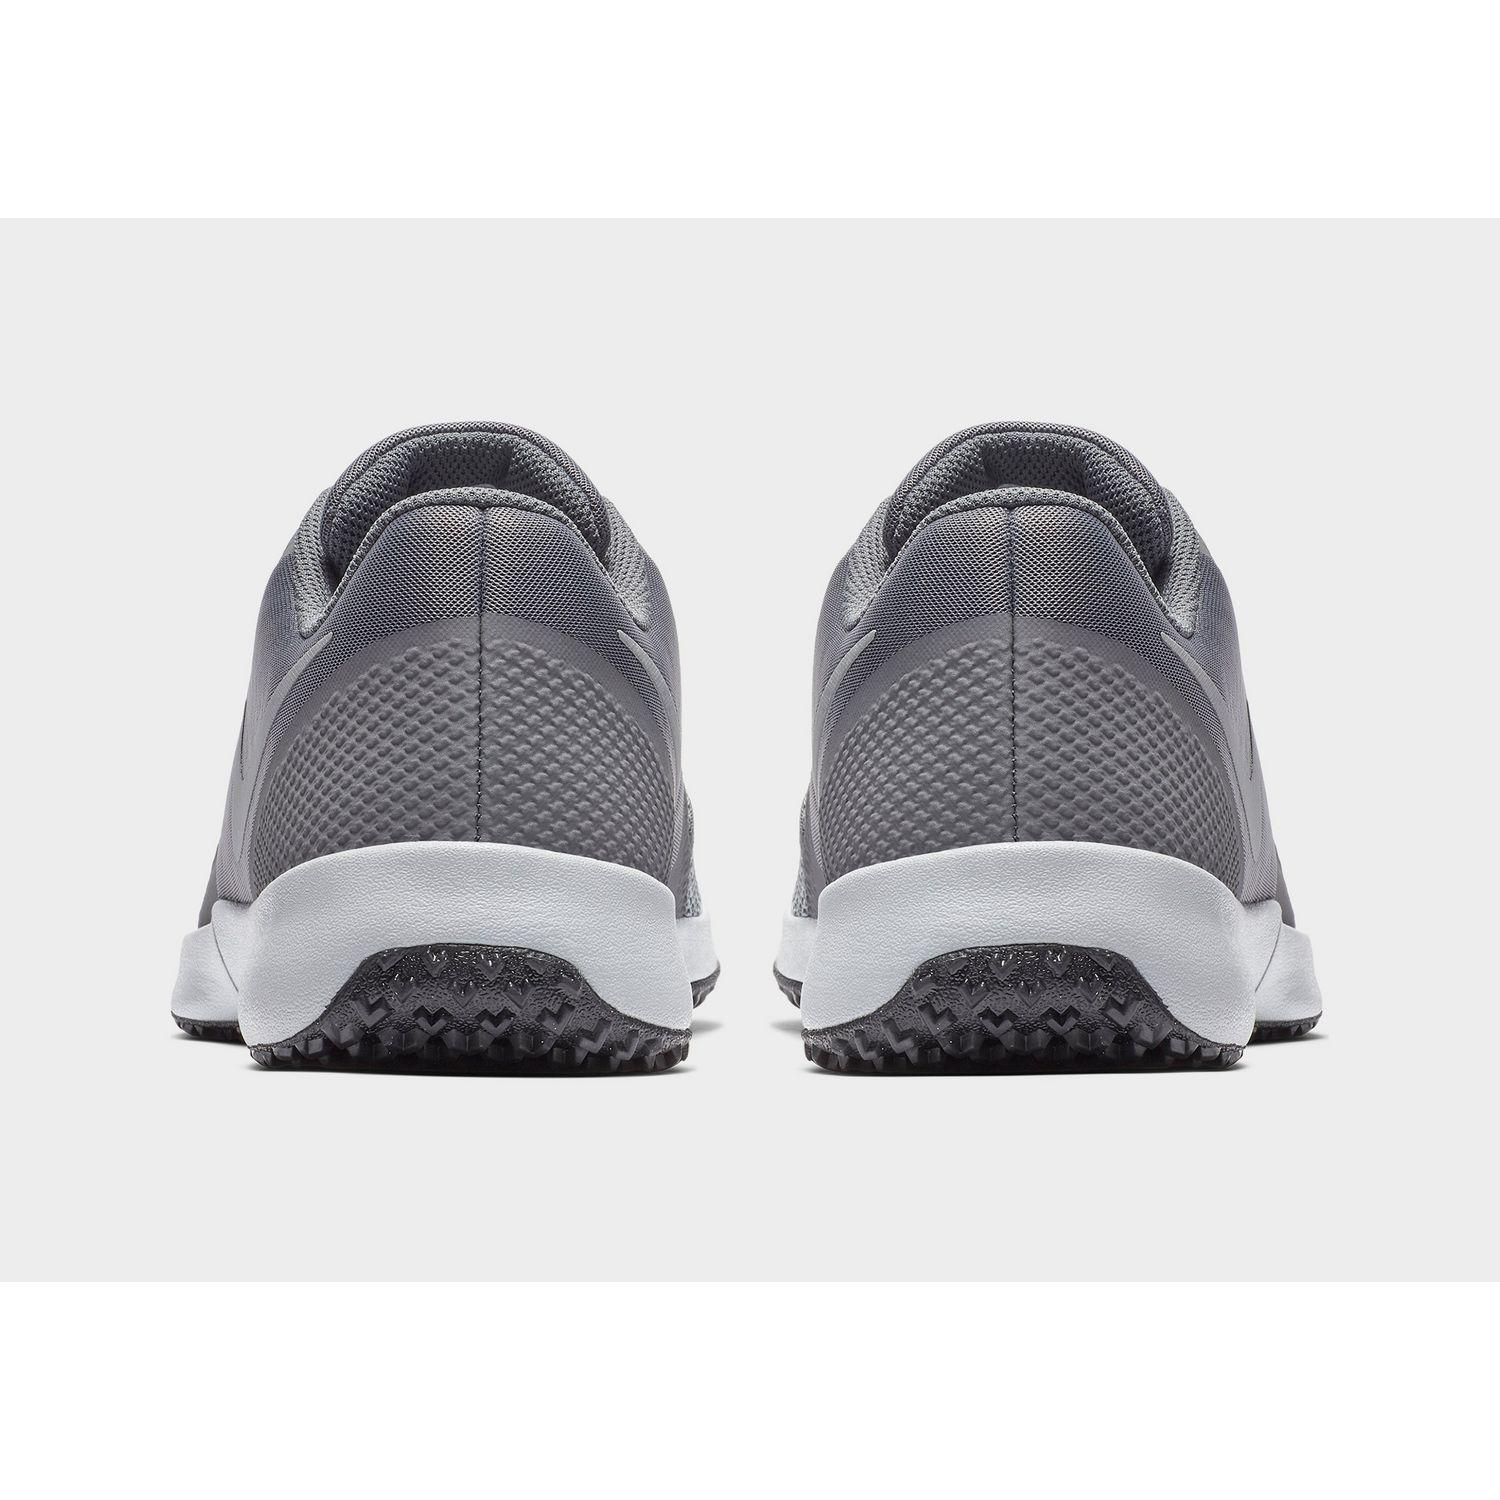 86e2b0dc641 Nike - Gray Varsity Compete Trainer Men s Gym sport Training Shoe for Men -  Lyst. View fullscreen